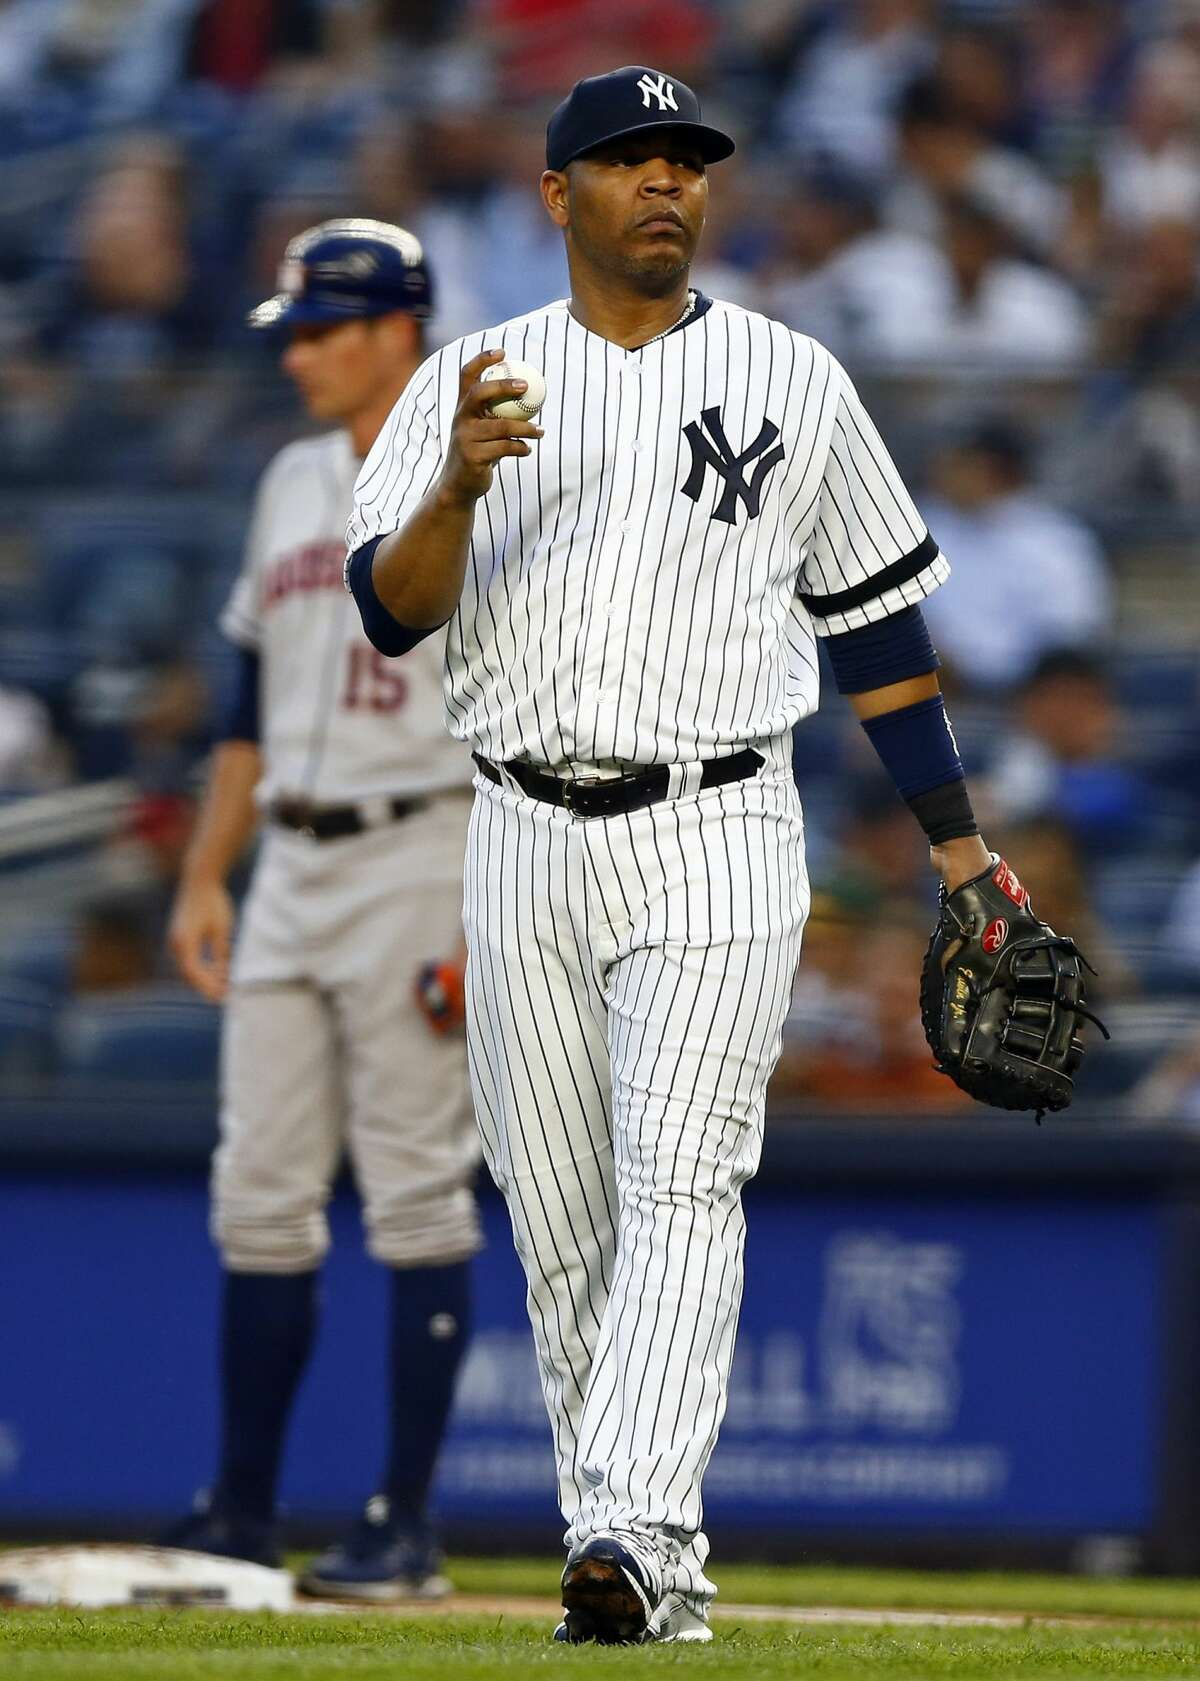 New York Yankees first baseman Edwin Encarnacion looks for a new ball during the fourth inning of a baseball game against the Houston Astros on Thursday, June 20, 2019, in New York. (AP Photo/Adam Hunger)